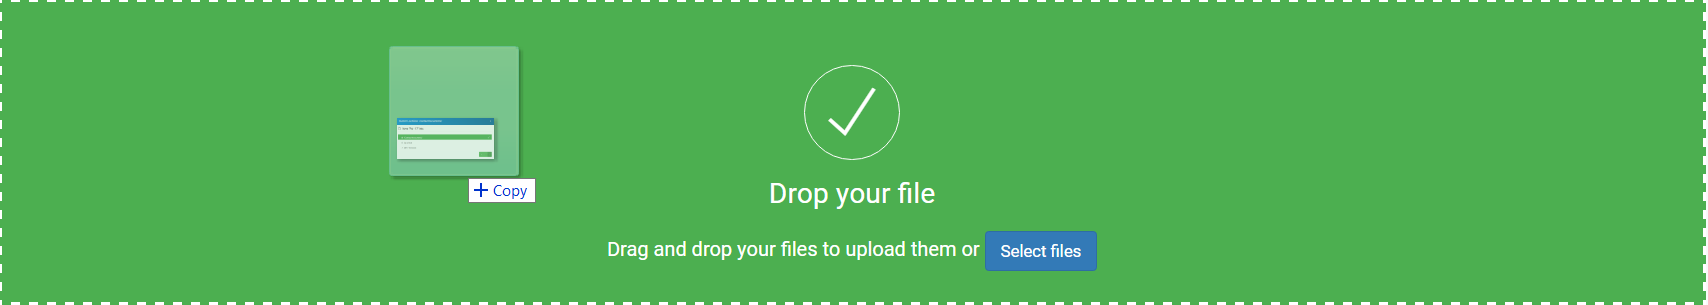 DMS_-_Drag_and_Drop_document.png